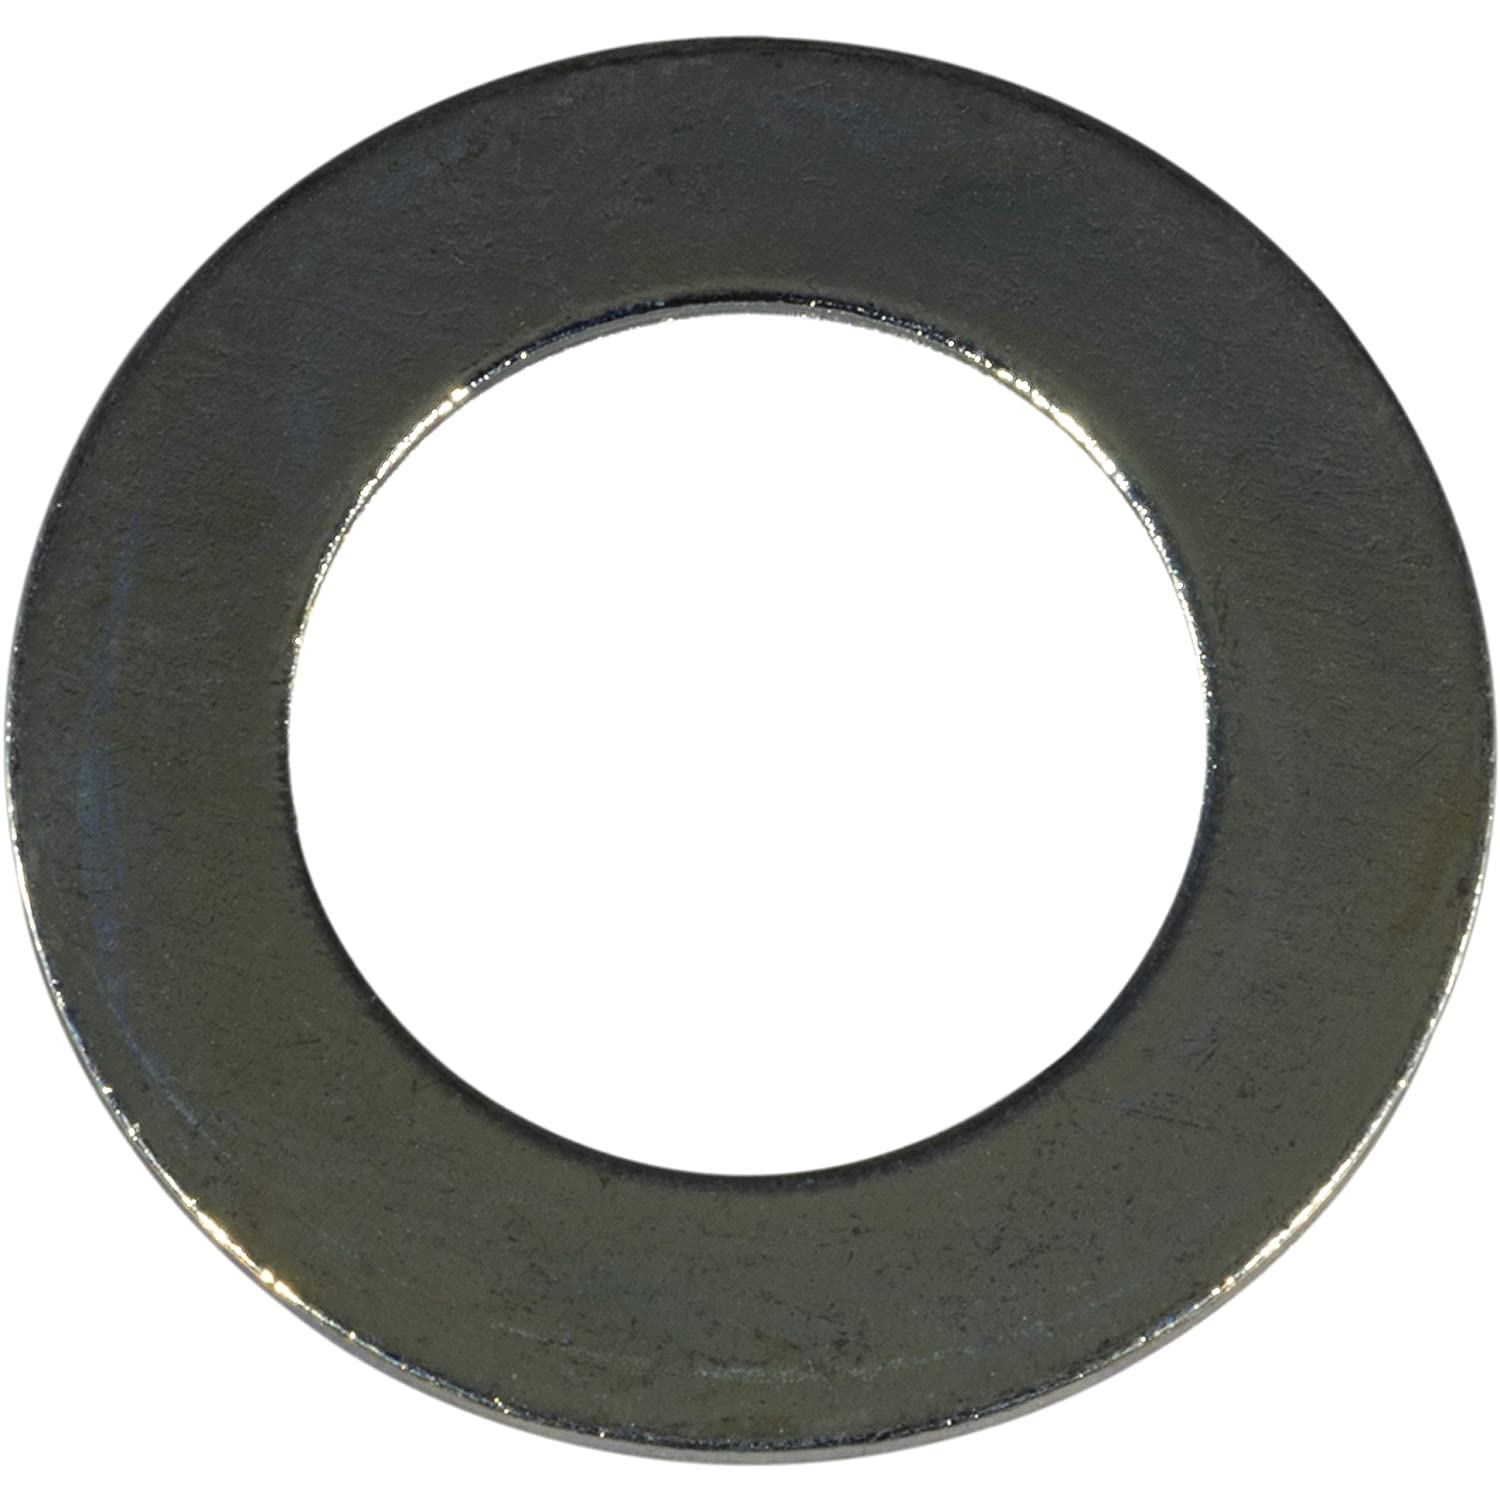 Hard to Find Fastener 1 Machine Bushing 3 4 x 1 1 4 x 18 Inch